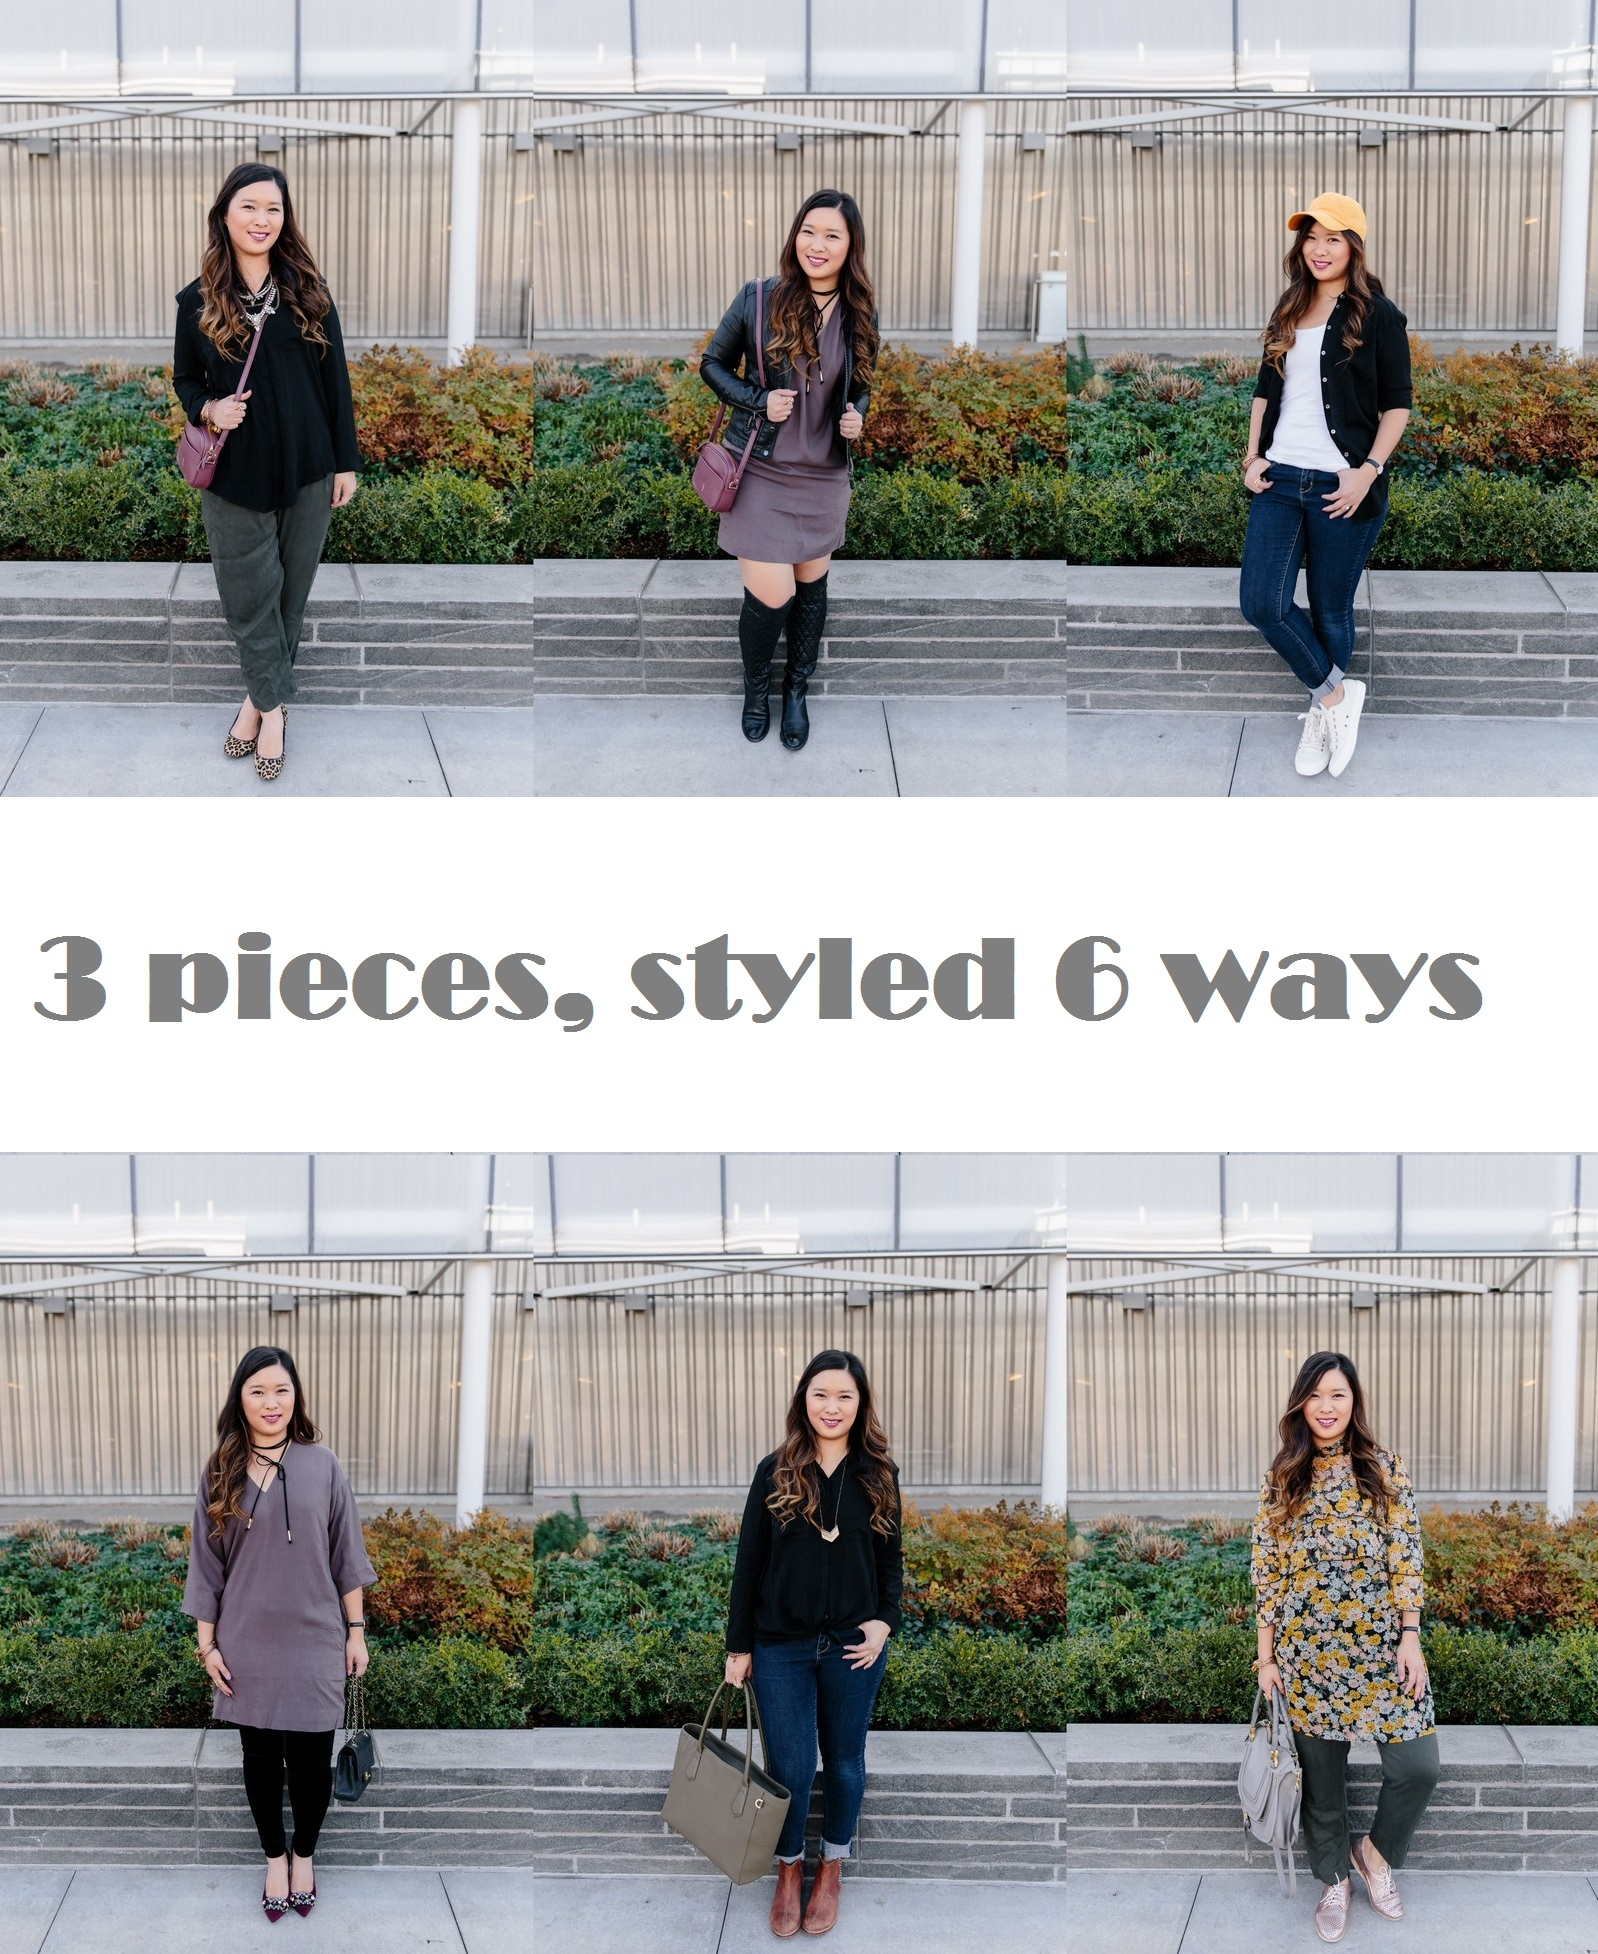 3 pieces, styled 6 ways with Thacker